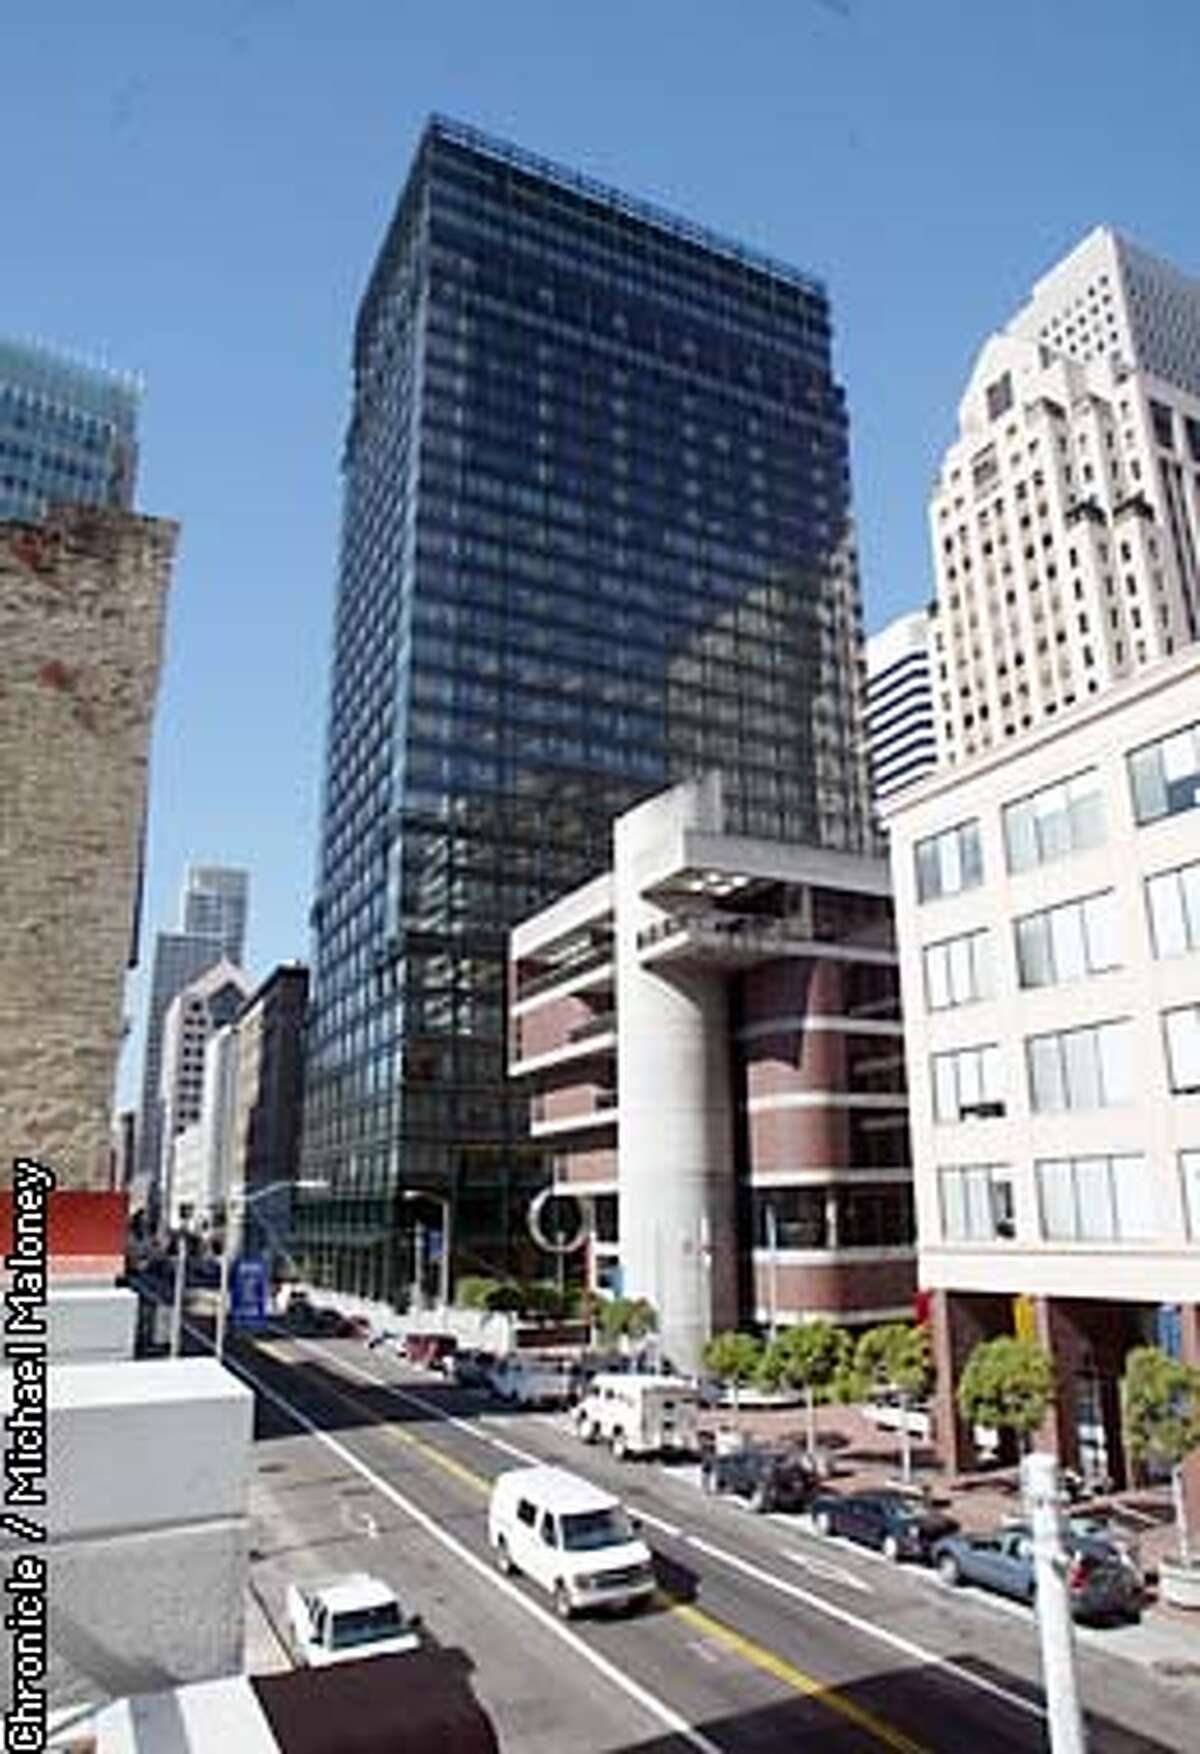 New highrise in SF designed by architect Cesar Pelli at 560 Mission St in SF. CHRONICLE PHOTO BY MICHAEL MALONEY